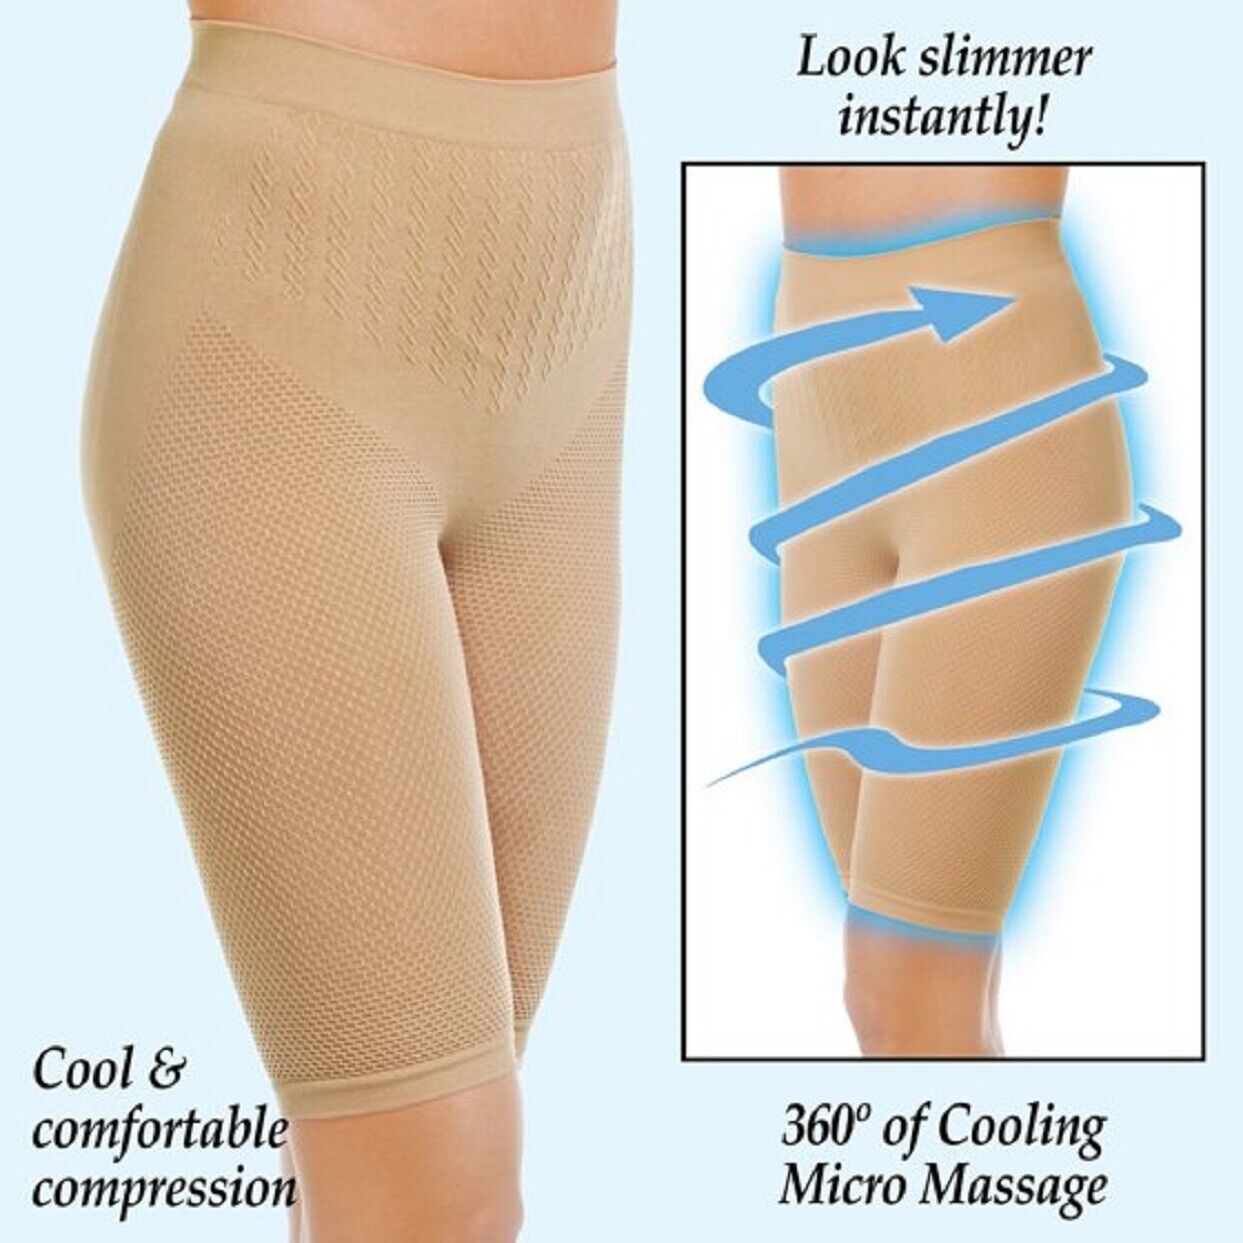 Cooling Shaping Pants Slimming 360° Cooling Micro Massage Gentle Compression S/M Clothing, Shoes & Accessories